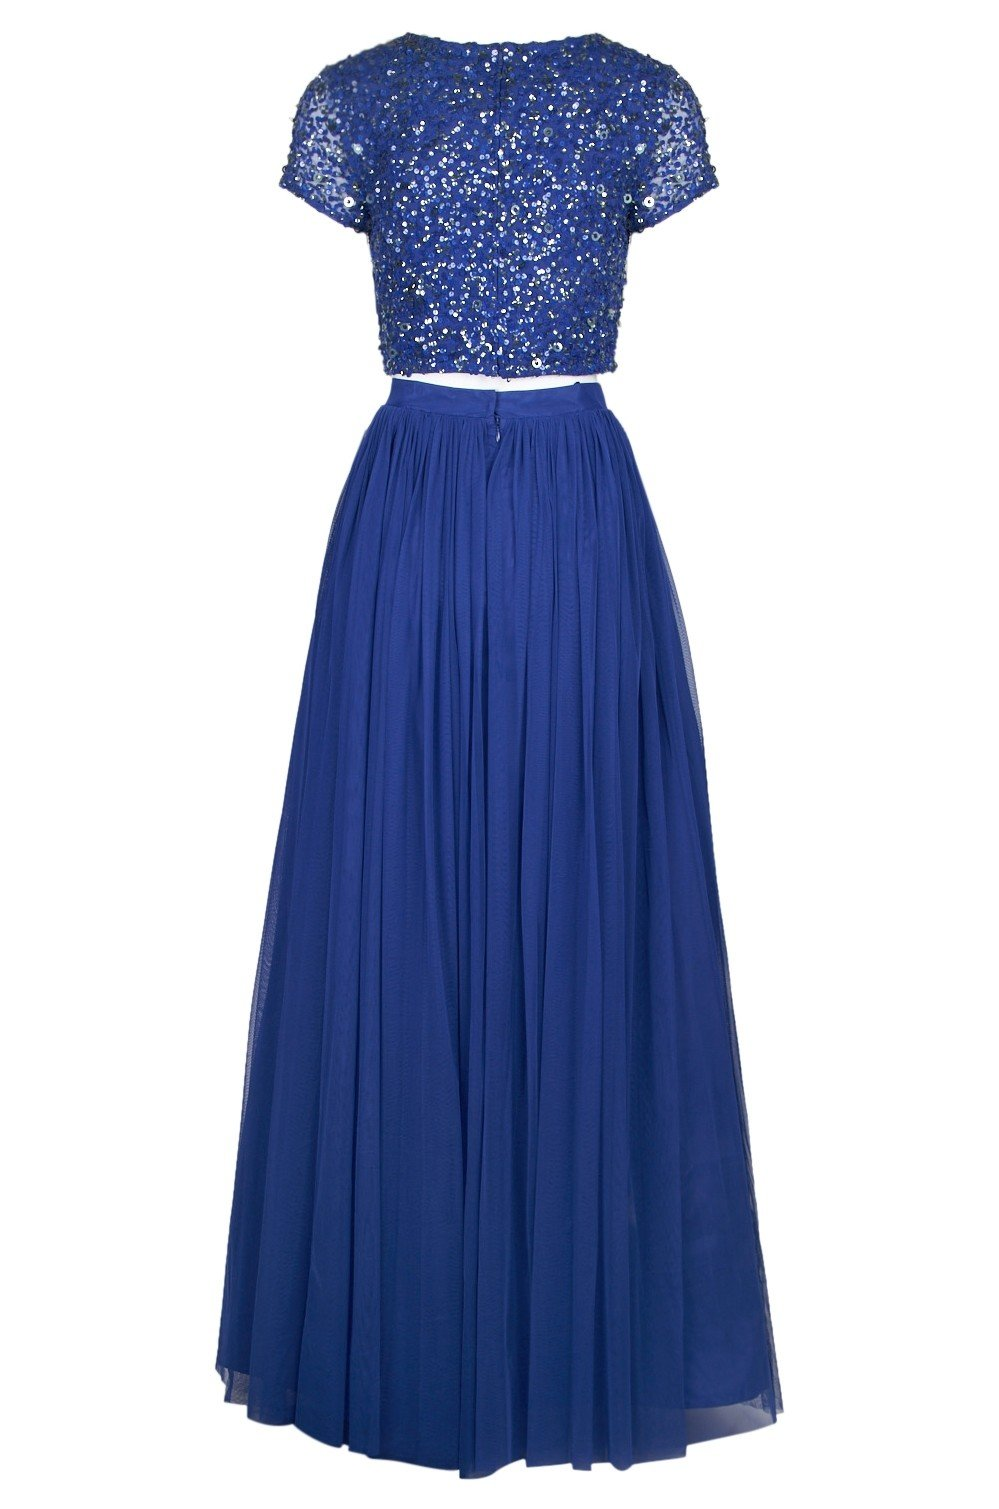 Adrianna Papell - 91922190 Two-Piece Sequined Short Sleeve Long Dress In Blue